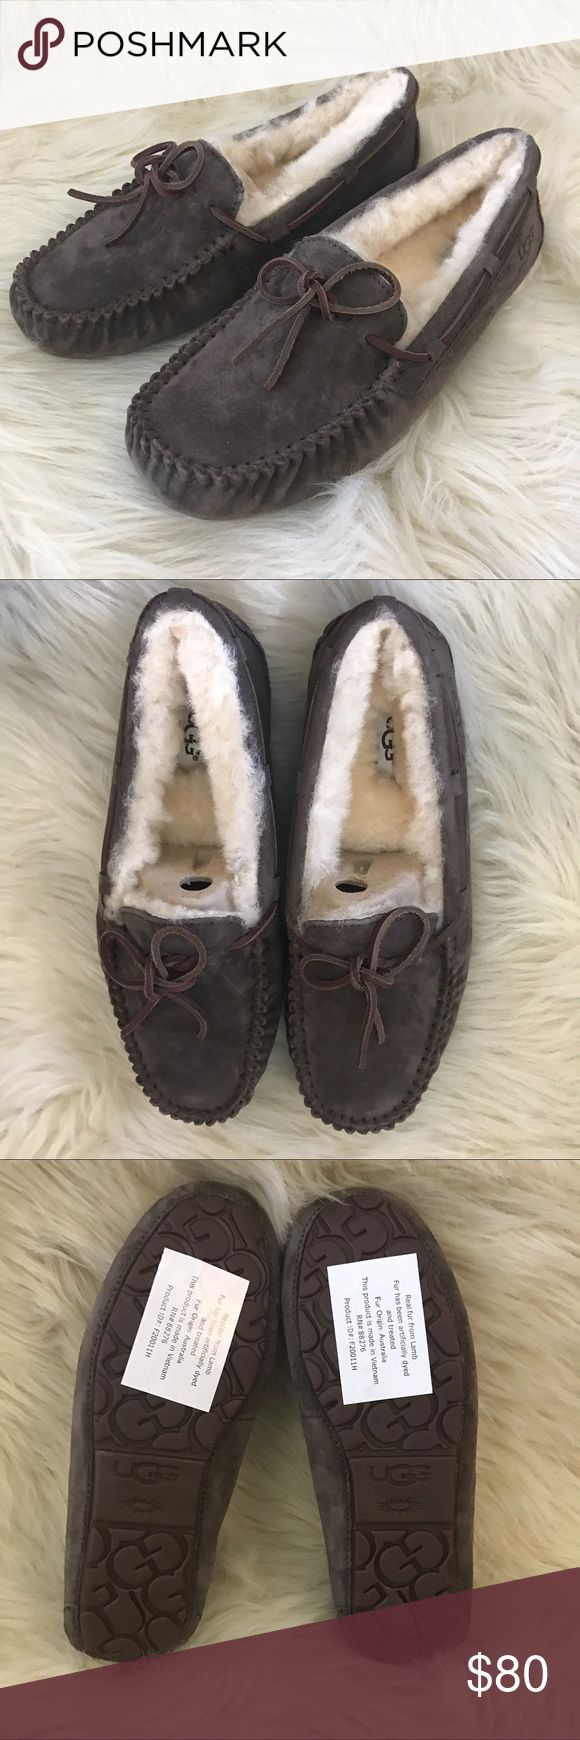 "UGG ""Dakota"" moccasin sheepskin suede slippers ✨BNWOB✨ color: espresso   🛍2+ BUNDLE = 💰SAVINGS!  ‼️= PRICE FIRM!   💯BRAND AUTHENTIC   ✈️ SUPER FAST SHIPPING!   🖲 USE THE OFFER BUTTON TO NEGOTIATE!  ❓ Questions? Just comment! ❤️  🤗❤✌🏼HAPPY POSHING!✌🏼❤️🤗 UGG Shoes Moccasins"